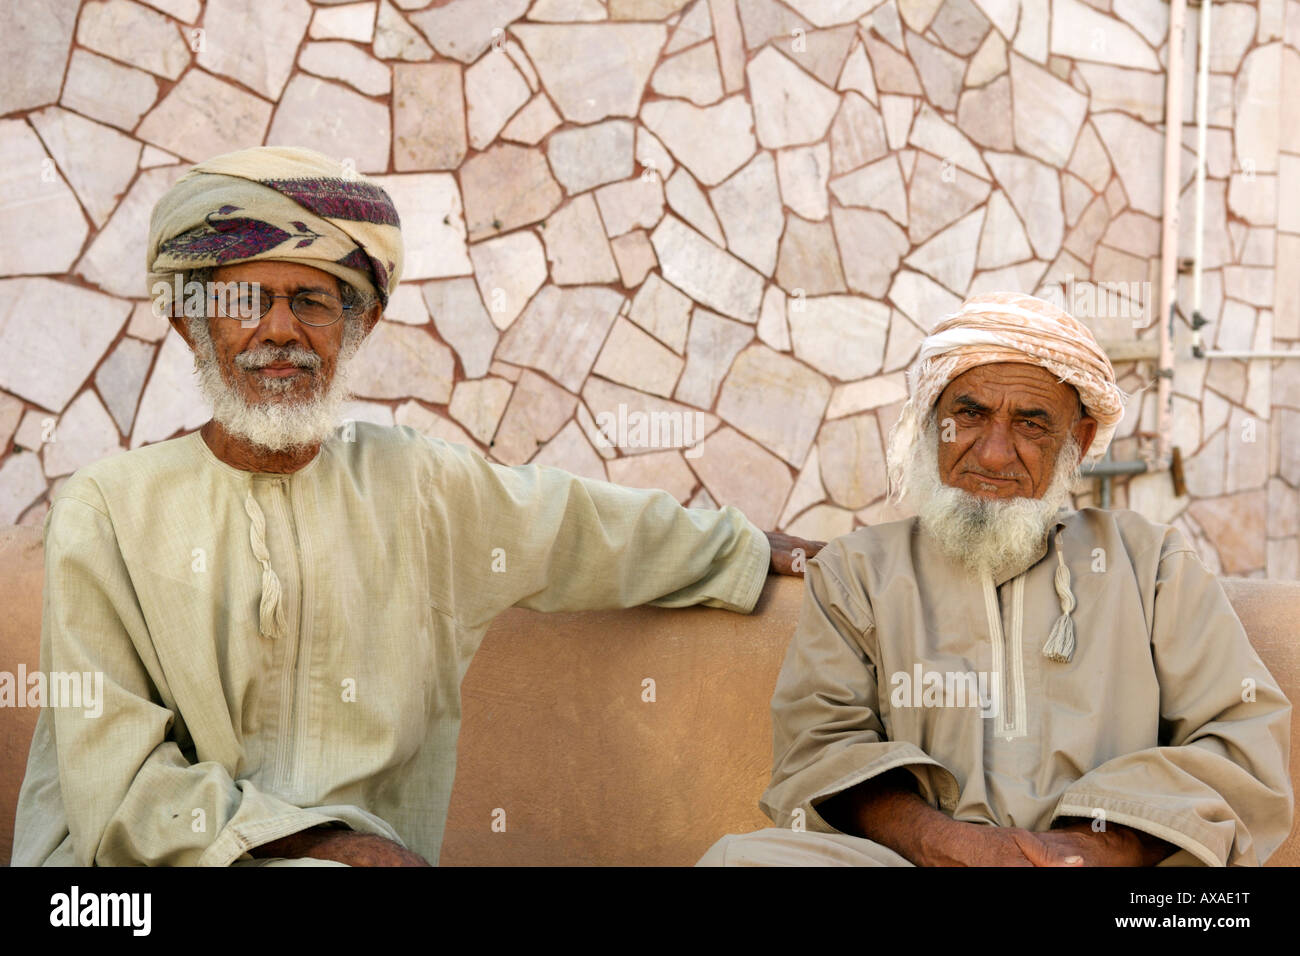 Potrait of two Omani men in Muscat, the capital of the Sultanate of Oman. - Stock Image